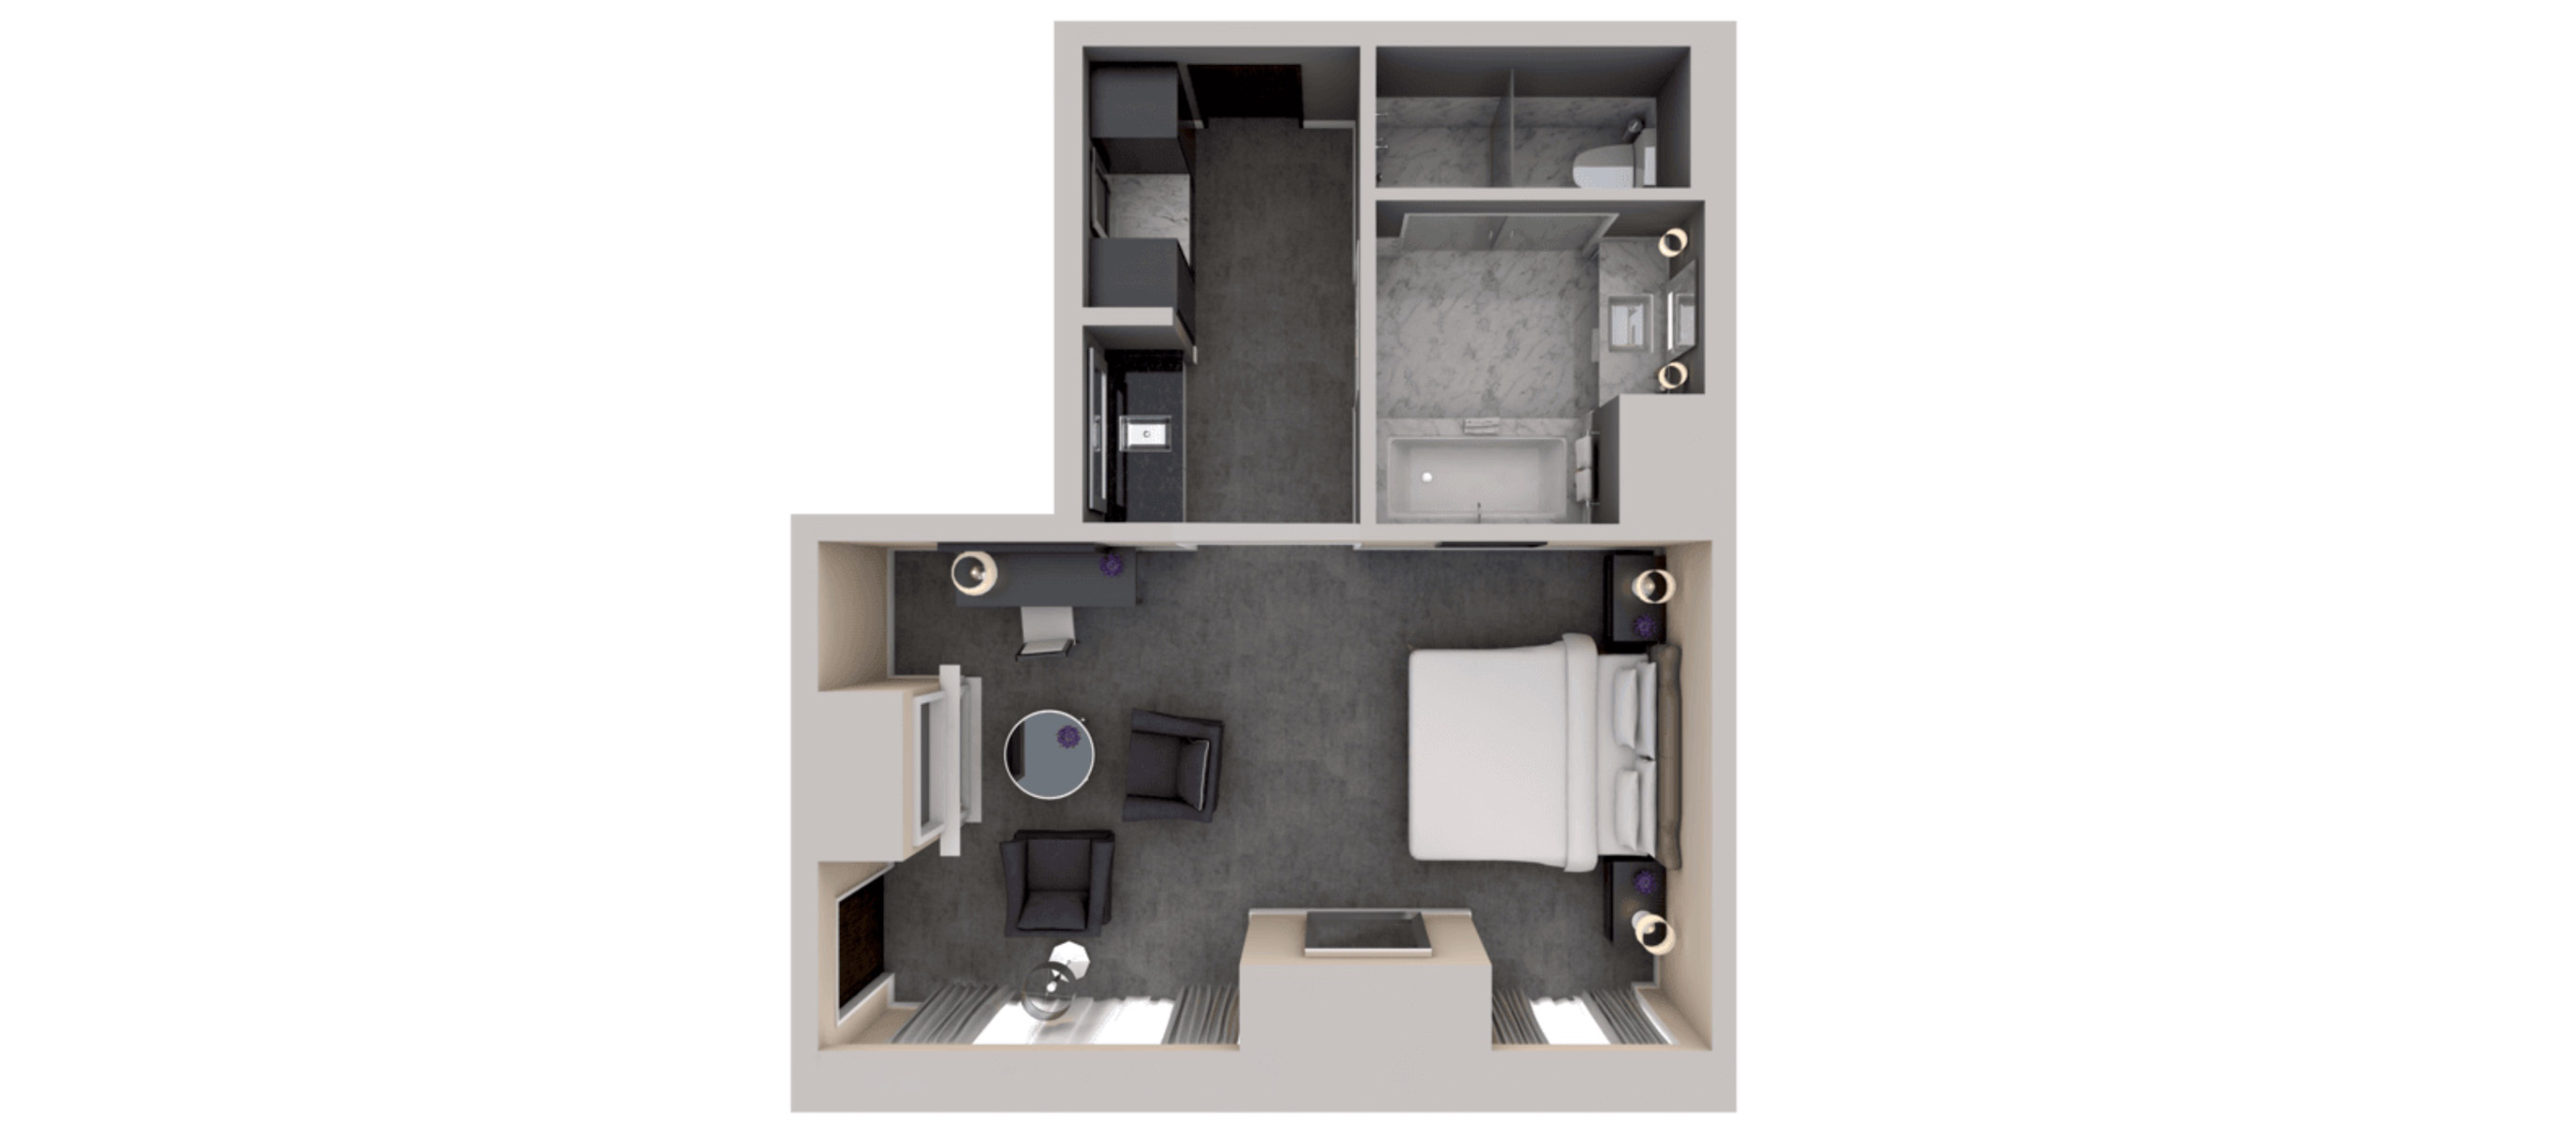 Deluxe Room - One King Bed Floorplan